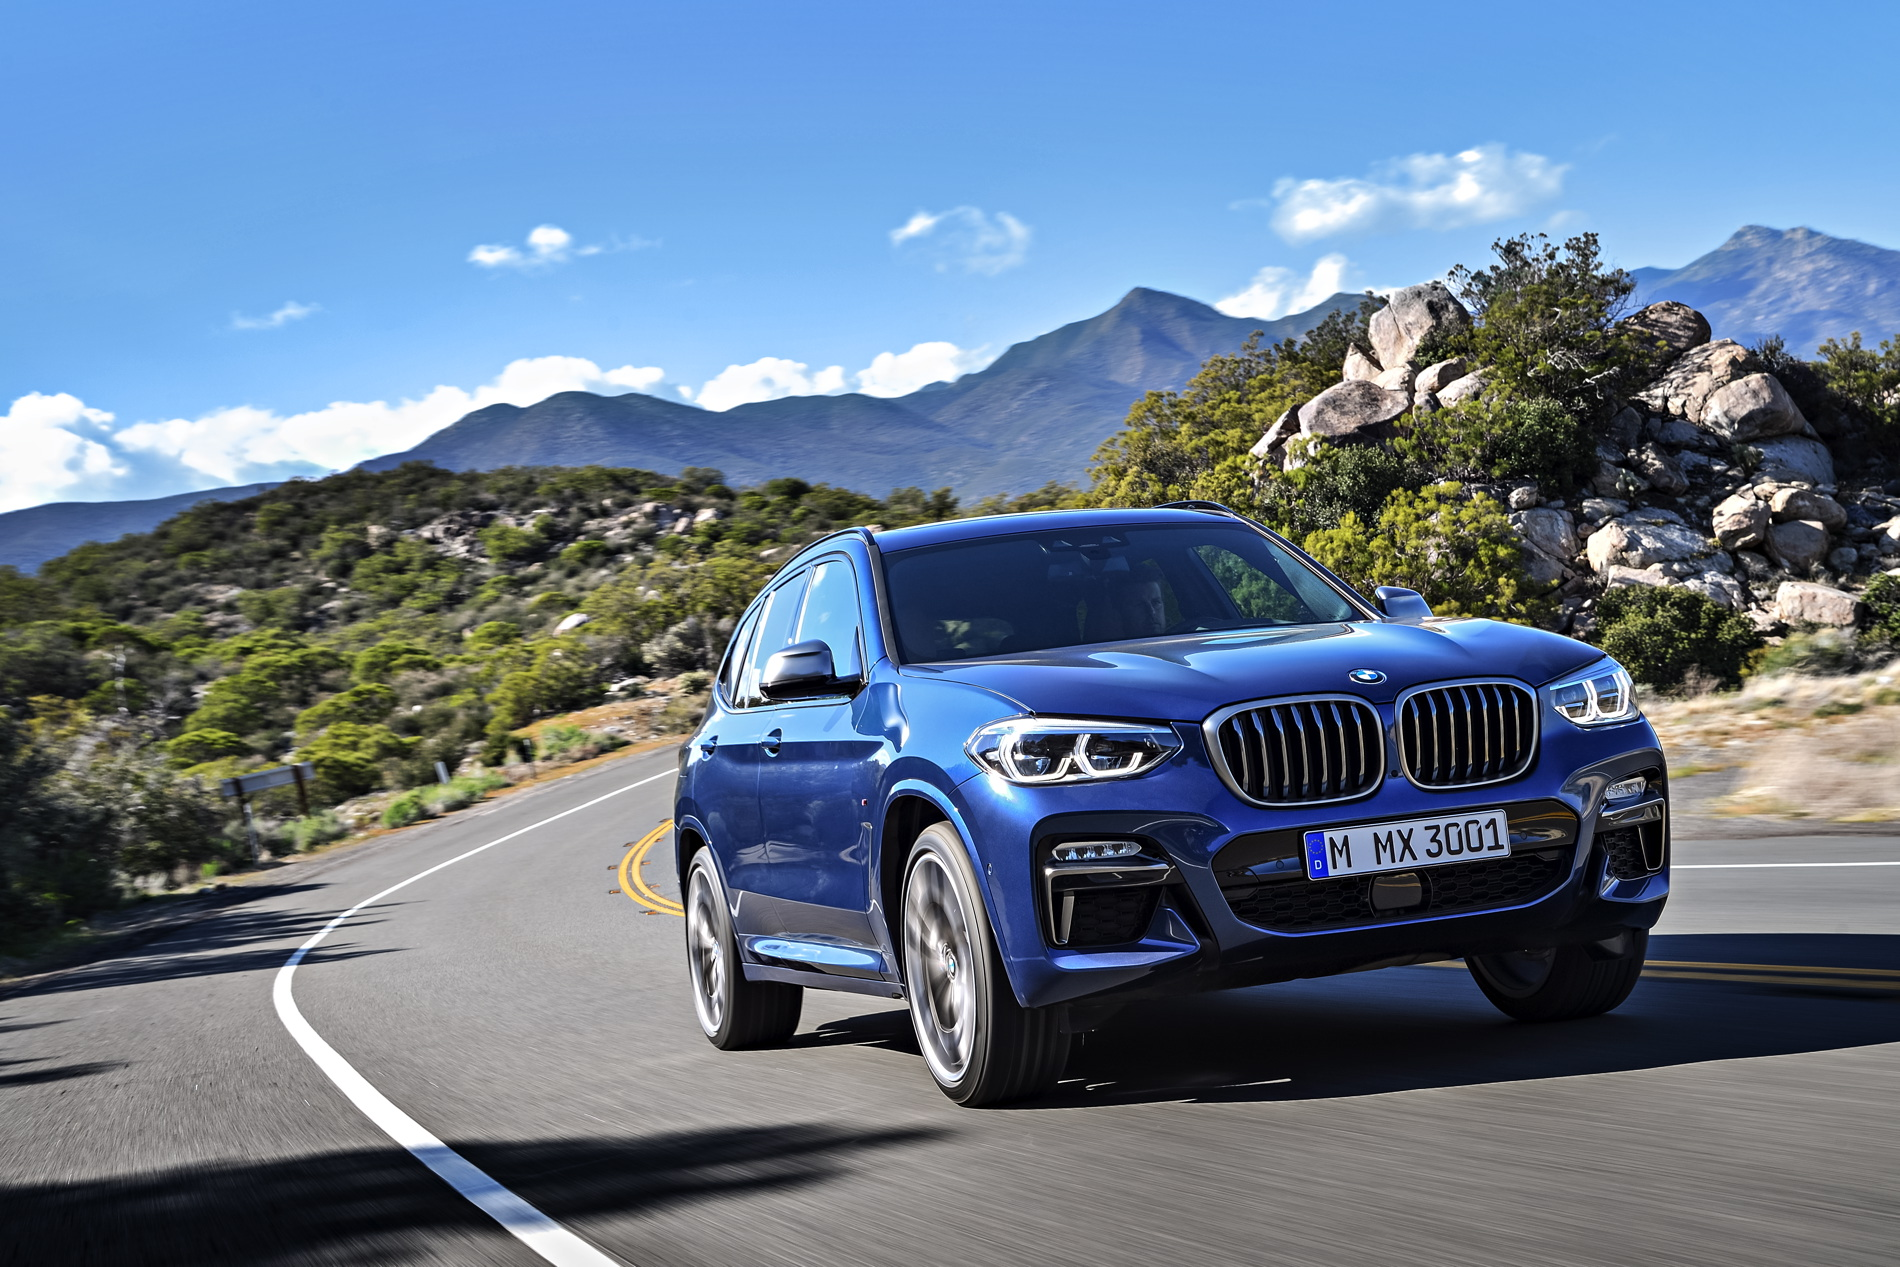 BMW X3 M40d available in July with 326 horsepower